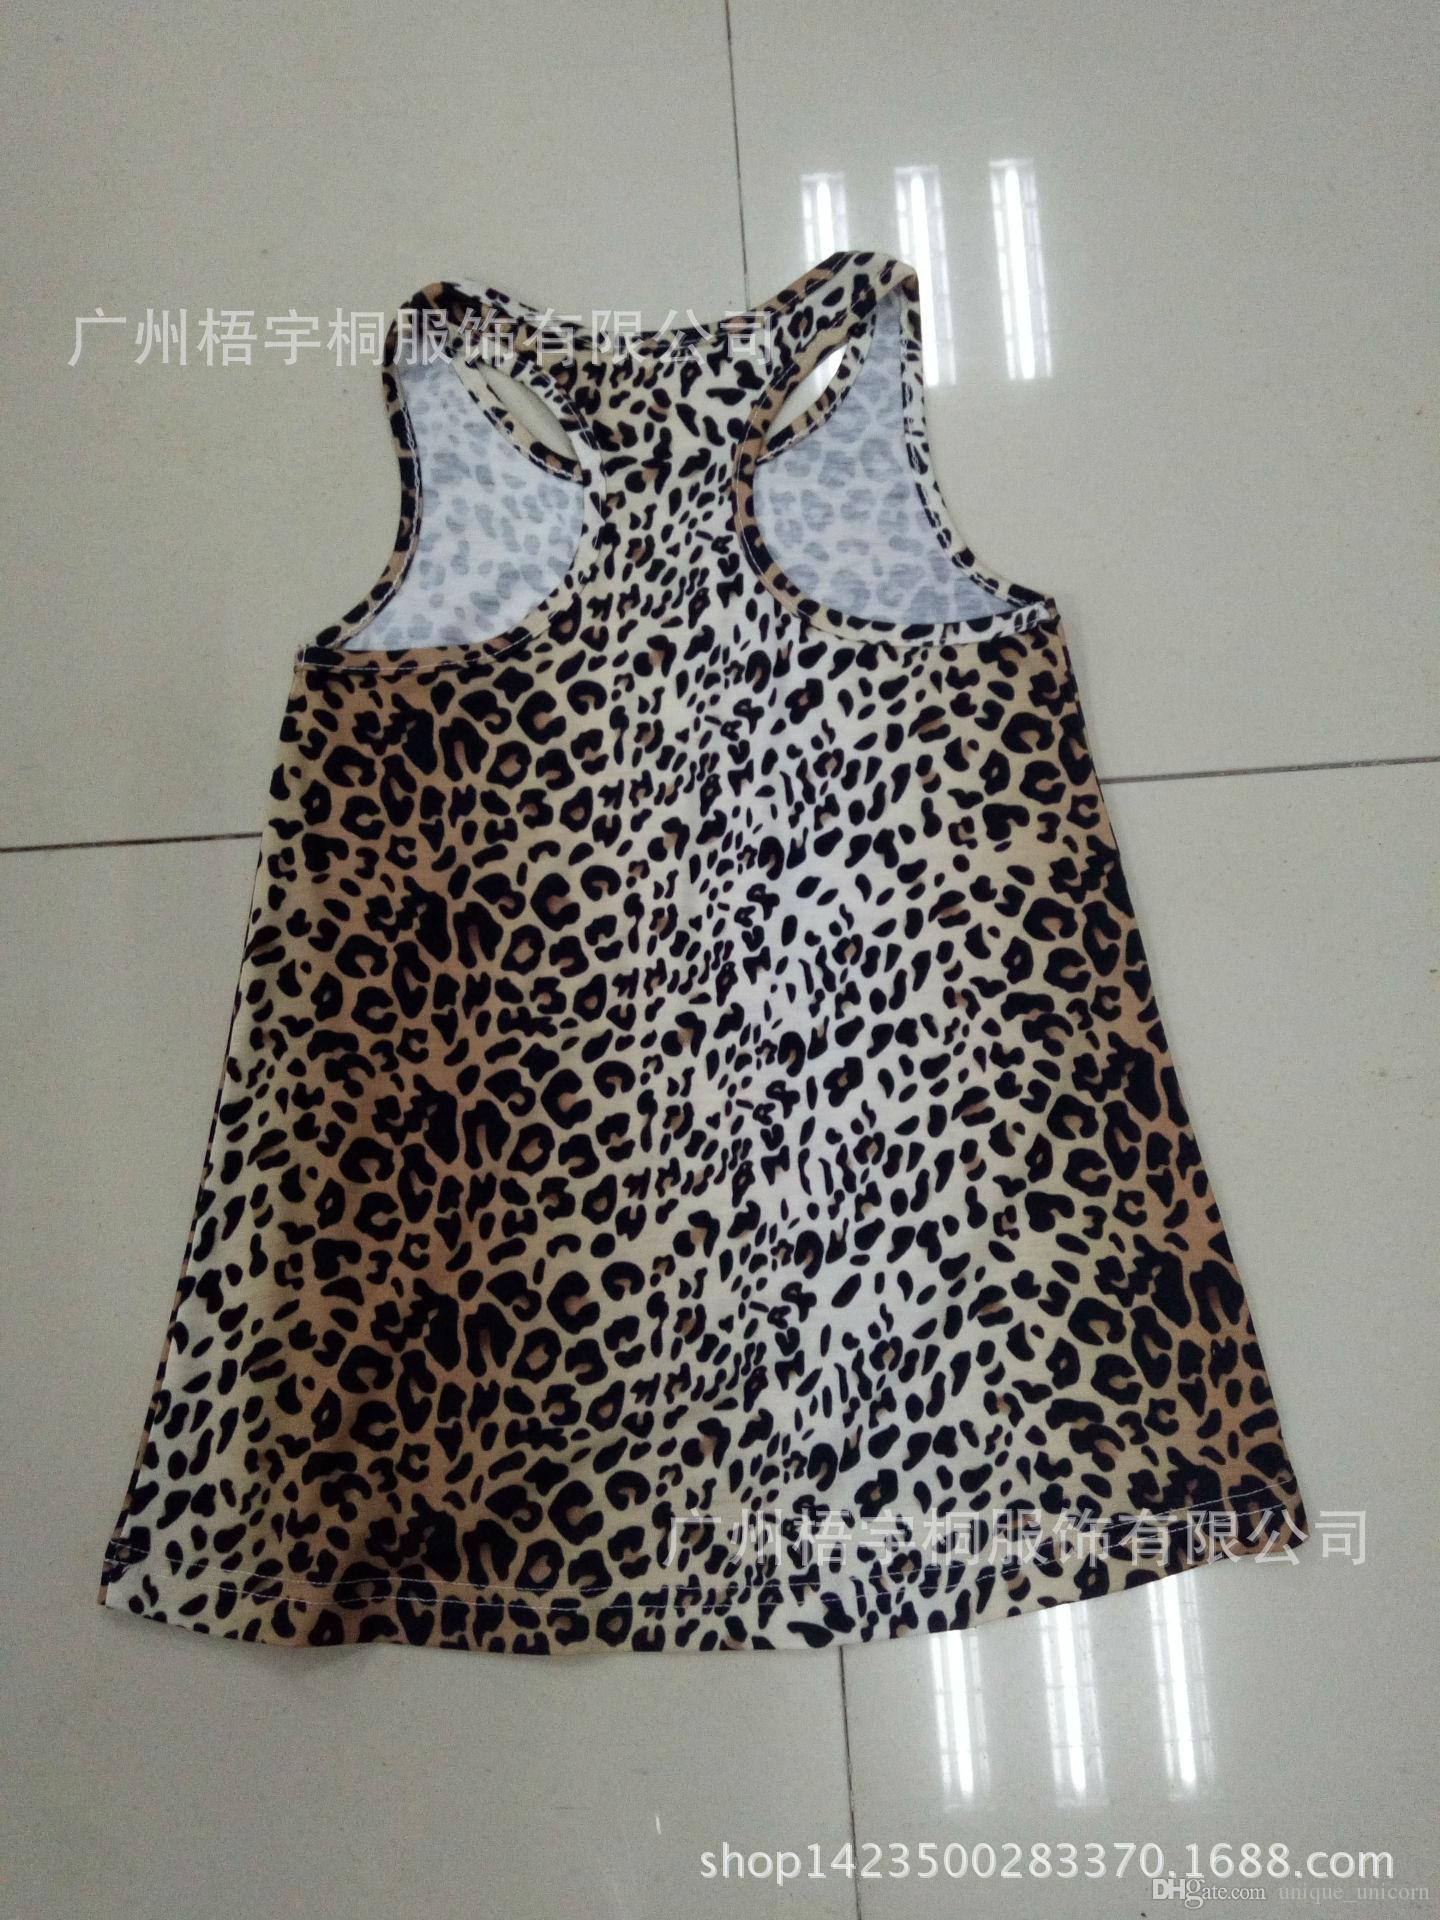 2017 Summer mother and daughter tops women sexy leopard printed t-shirt vest kids baby girl sundress beach holiday tops